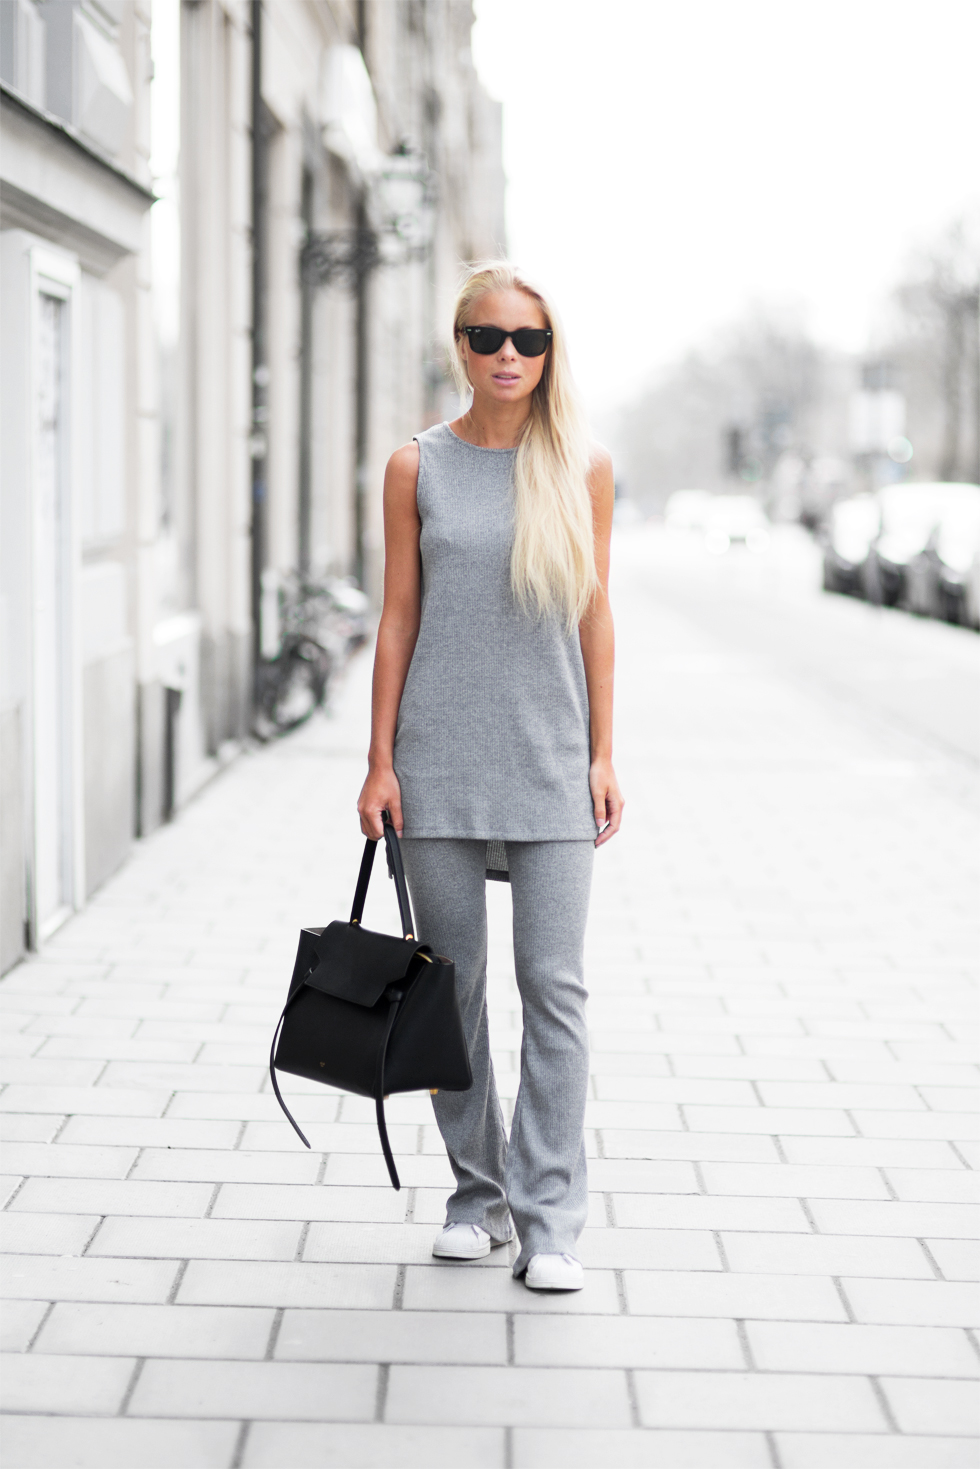 Victoria Tornegren is wearing an all grey outfit, with the trousers and top from Gina Tricot